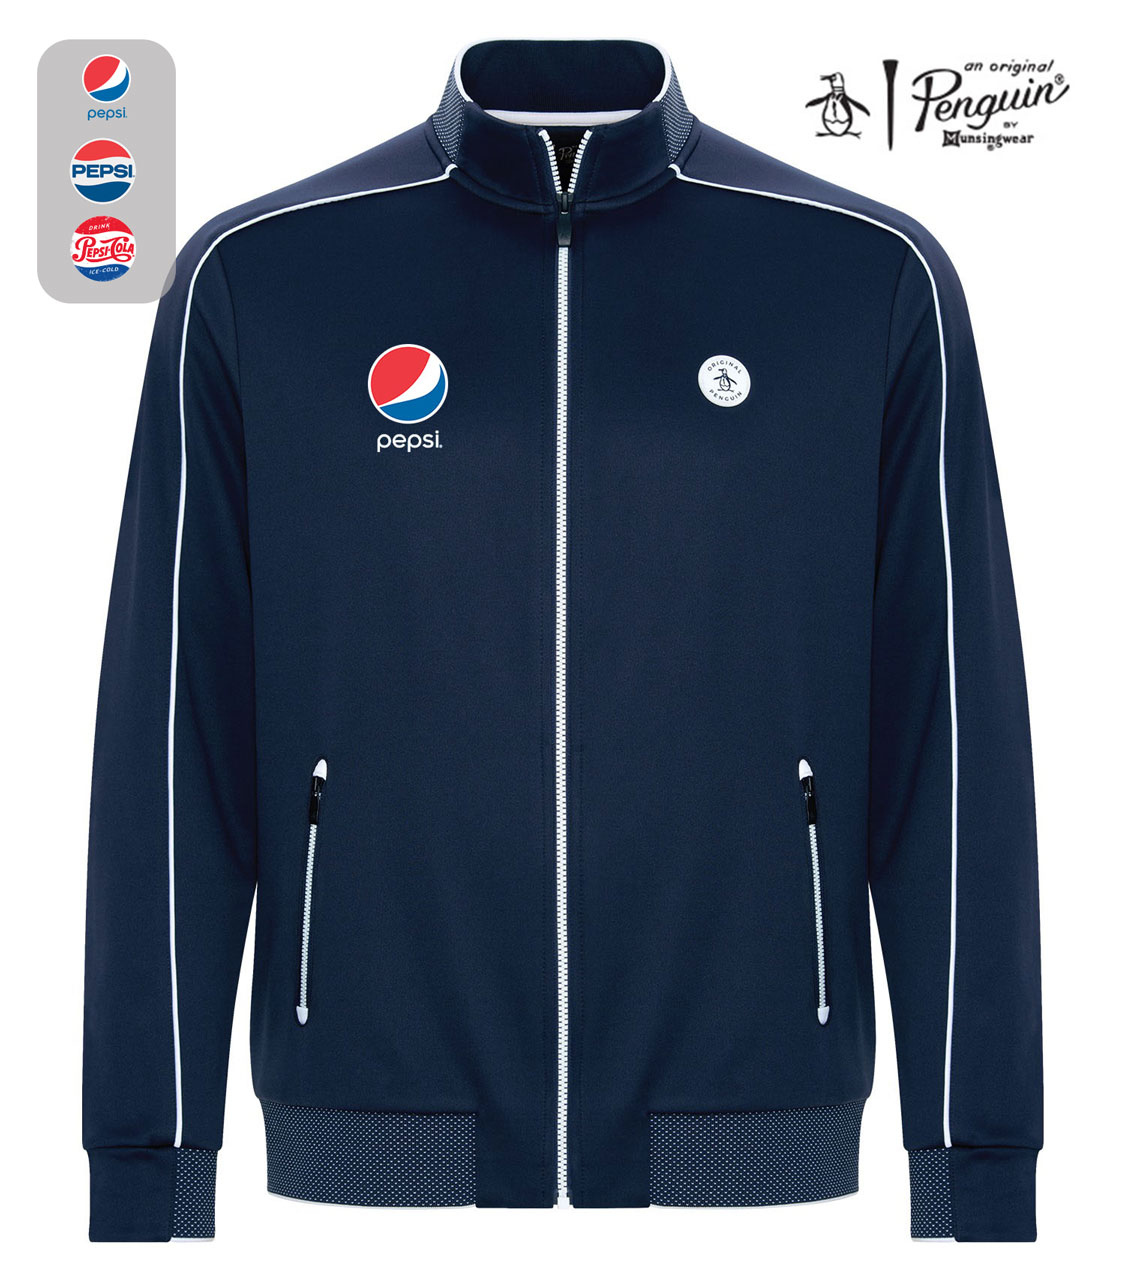 ORIGINAL PENGUIN ® BIRDSEYE TRACK JACKET